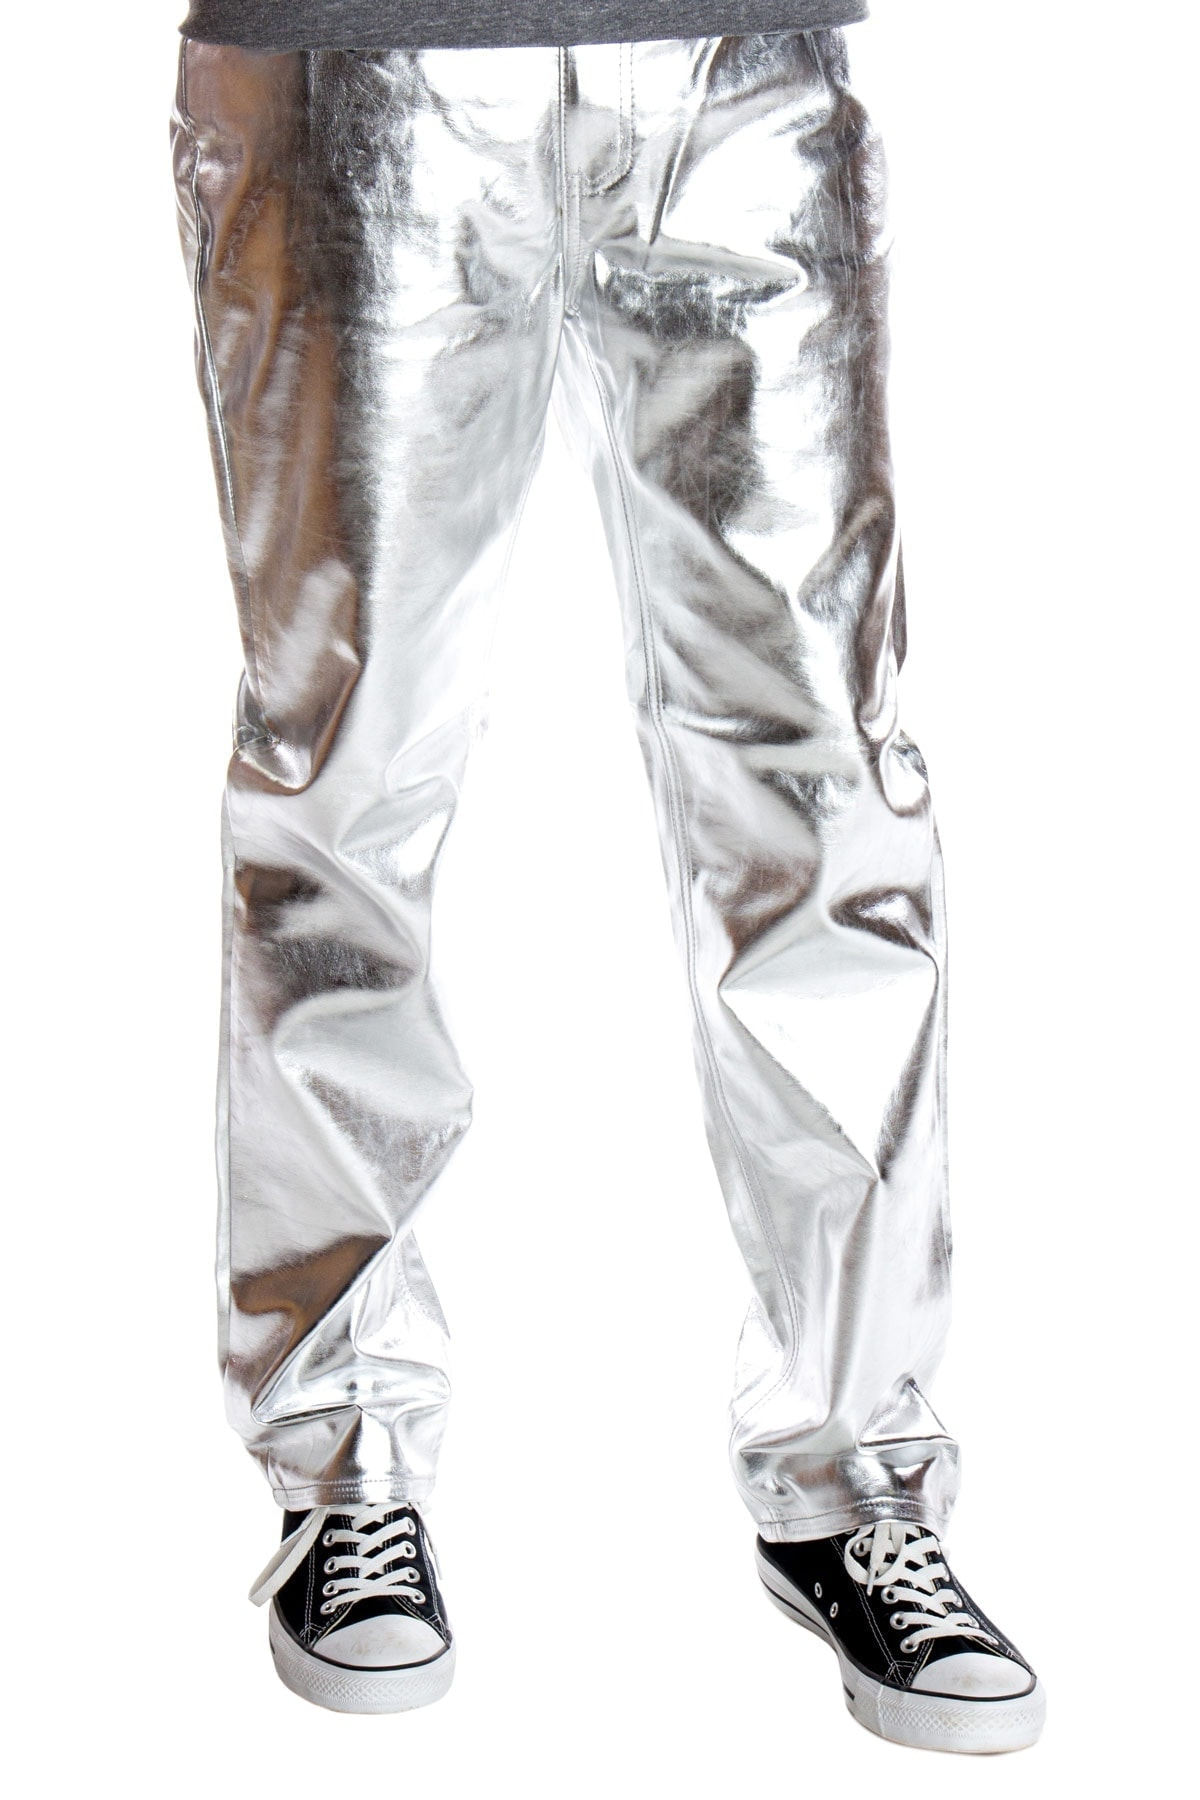 silver metallic jeans for men